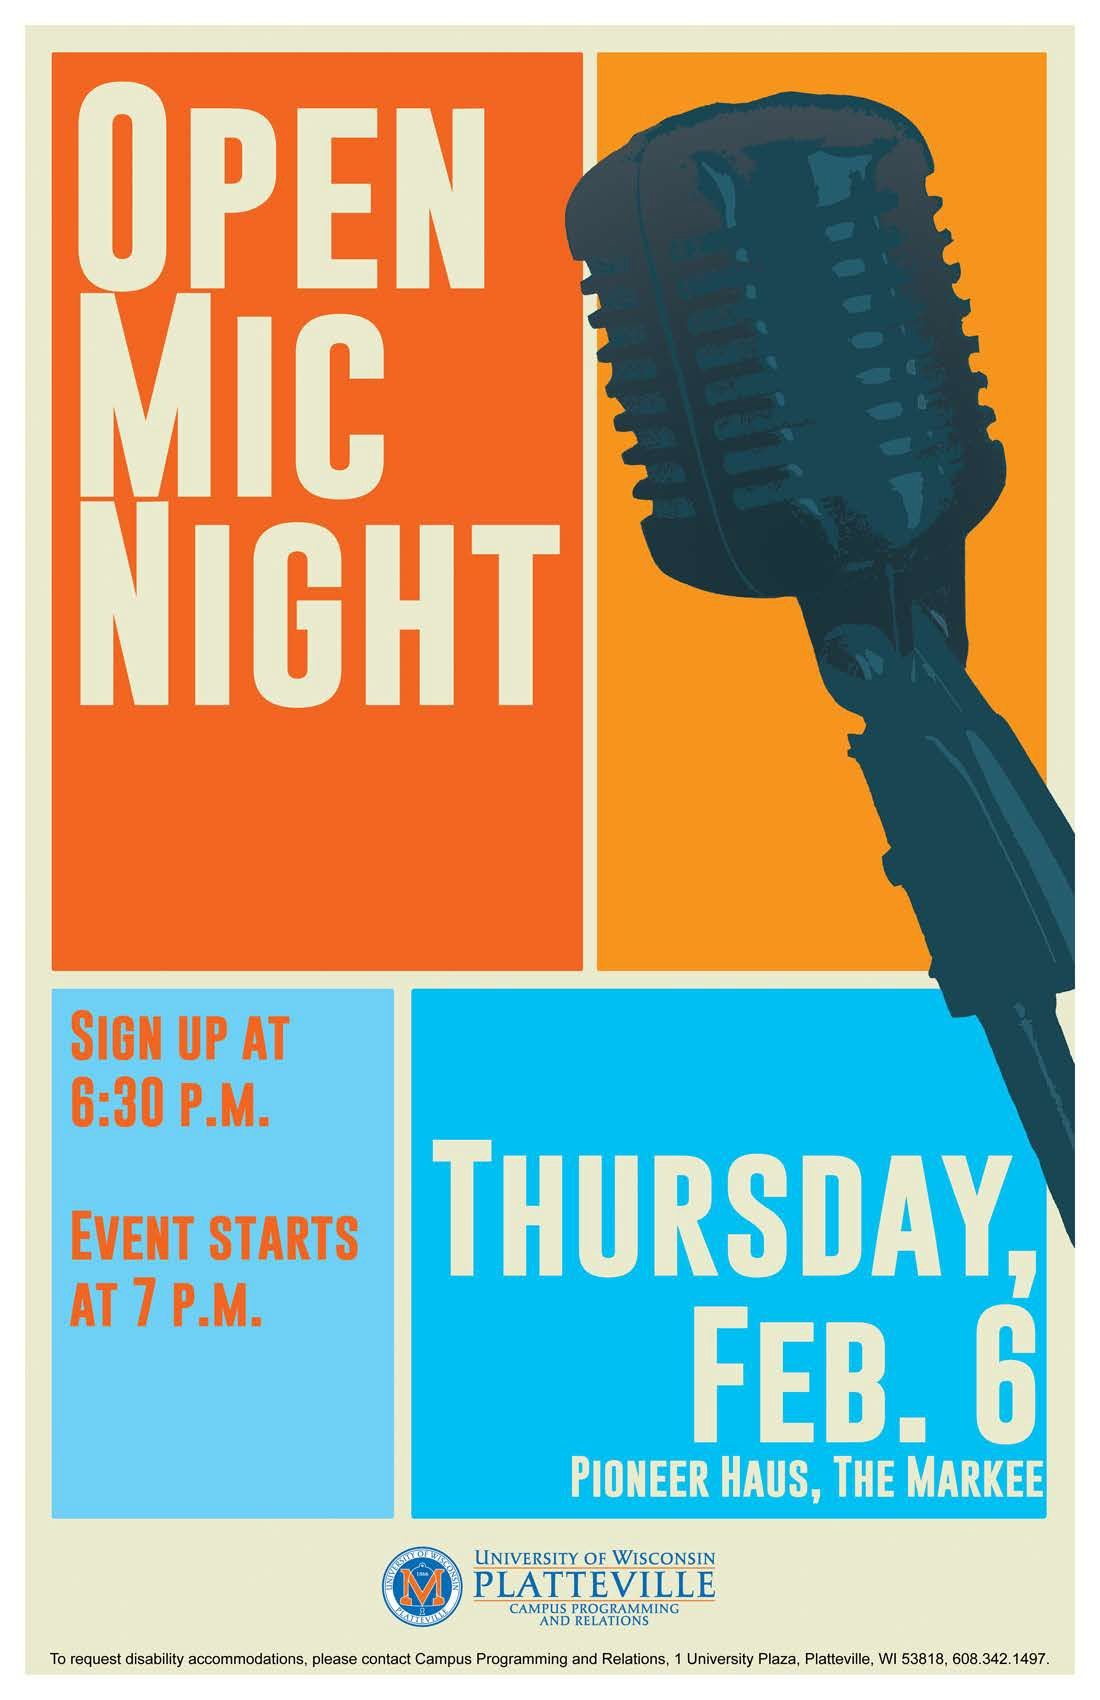 open mic night poster design layout graphic design flyer creative poster design event